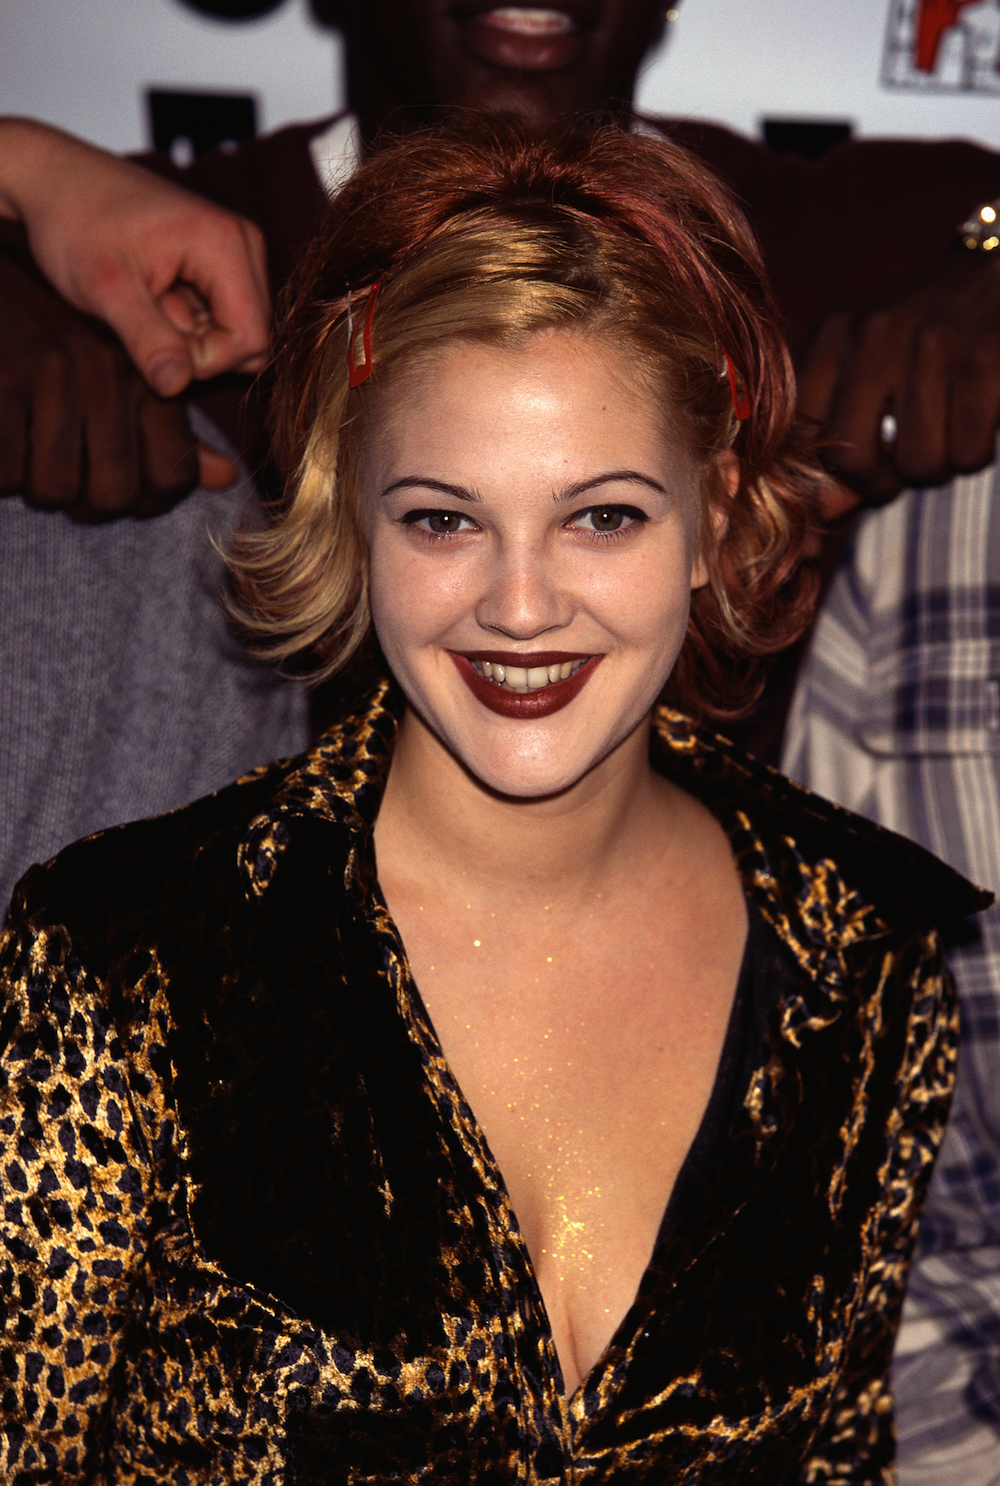 Why Drew Barrymore was my '90s style icon and still is ... Drew Barrymore